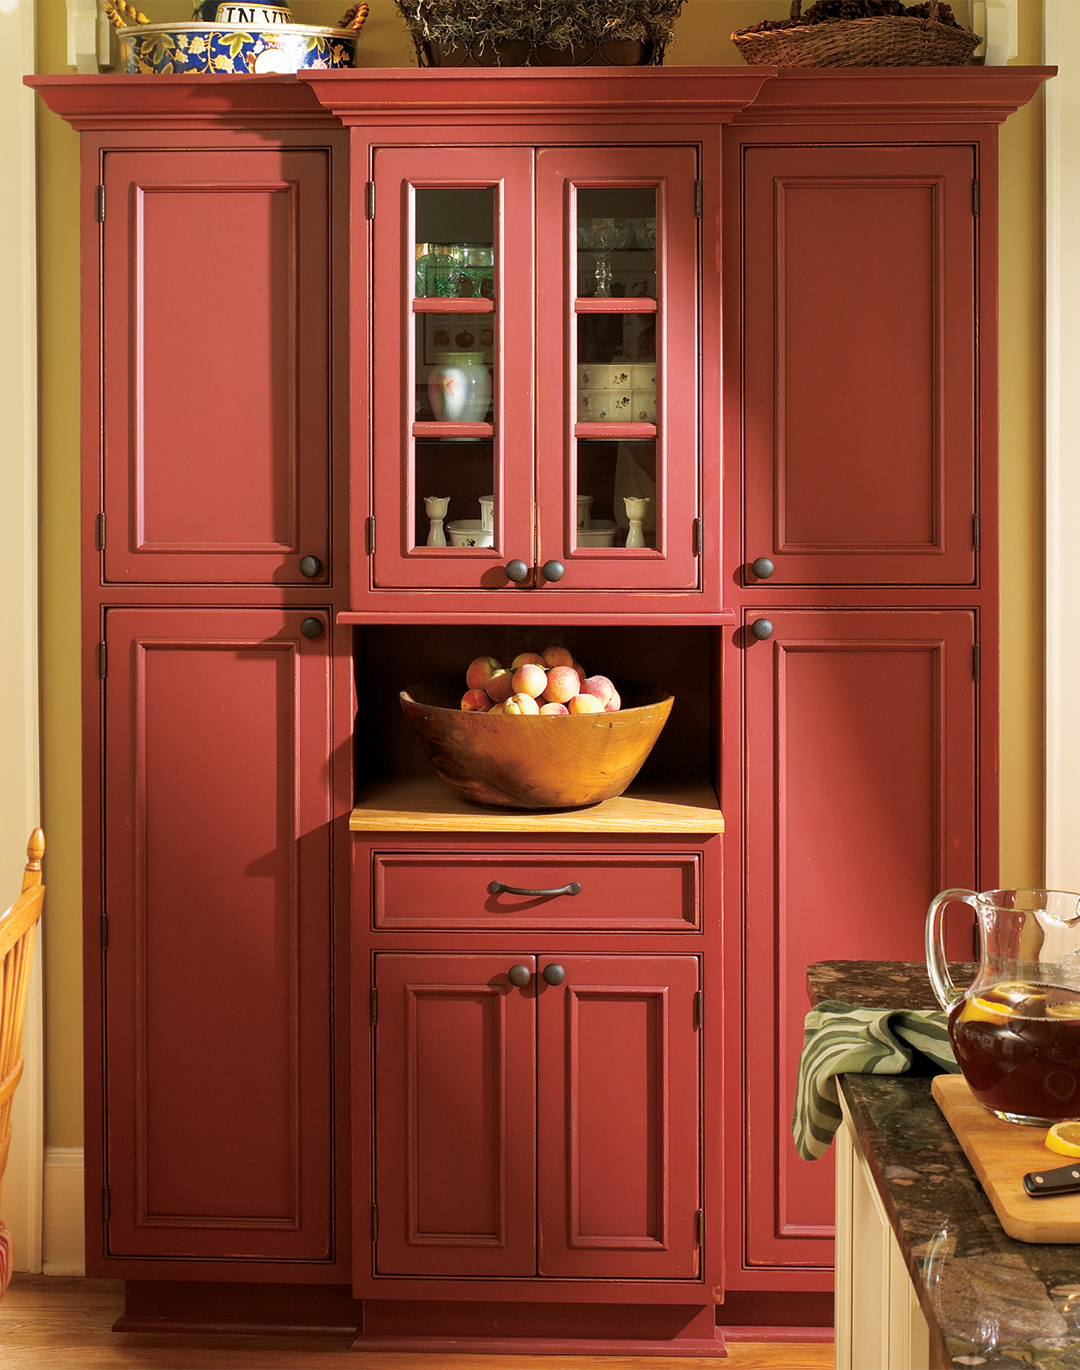 Farmhouse red kitchen cabinets - Red kitchen cabinets ...